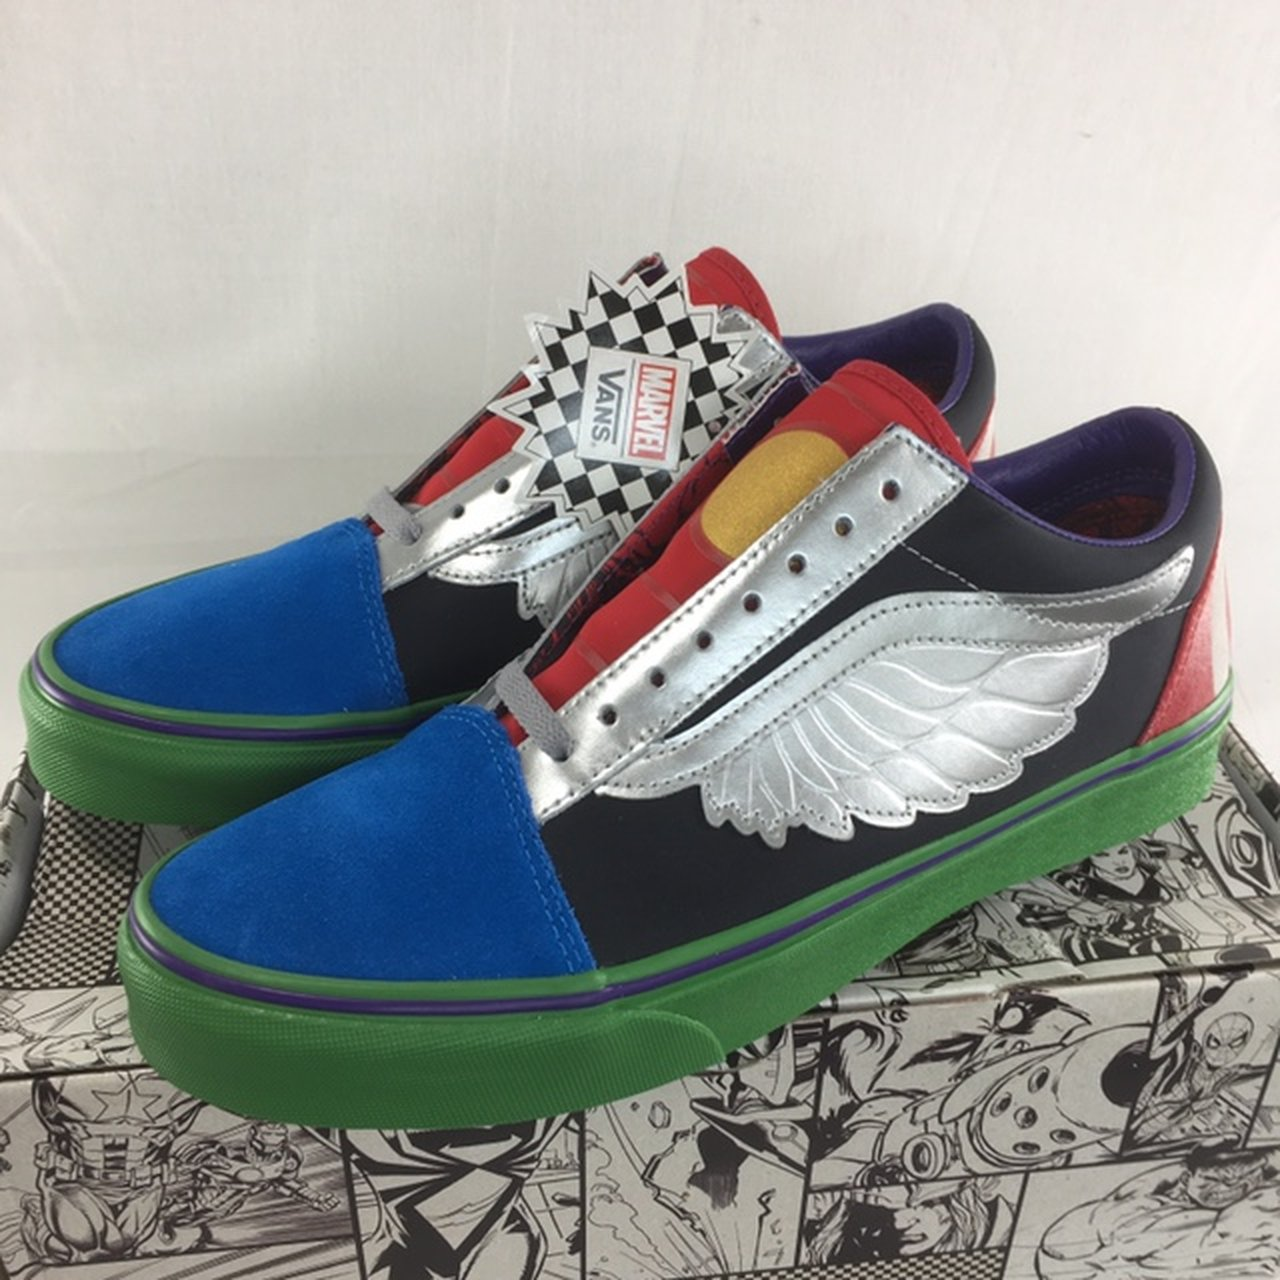 f0ff562158 Vans x marvel avengers Old Skool shoes men s 9.5 10 12 13 - Depop